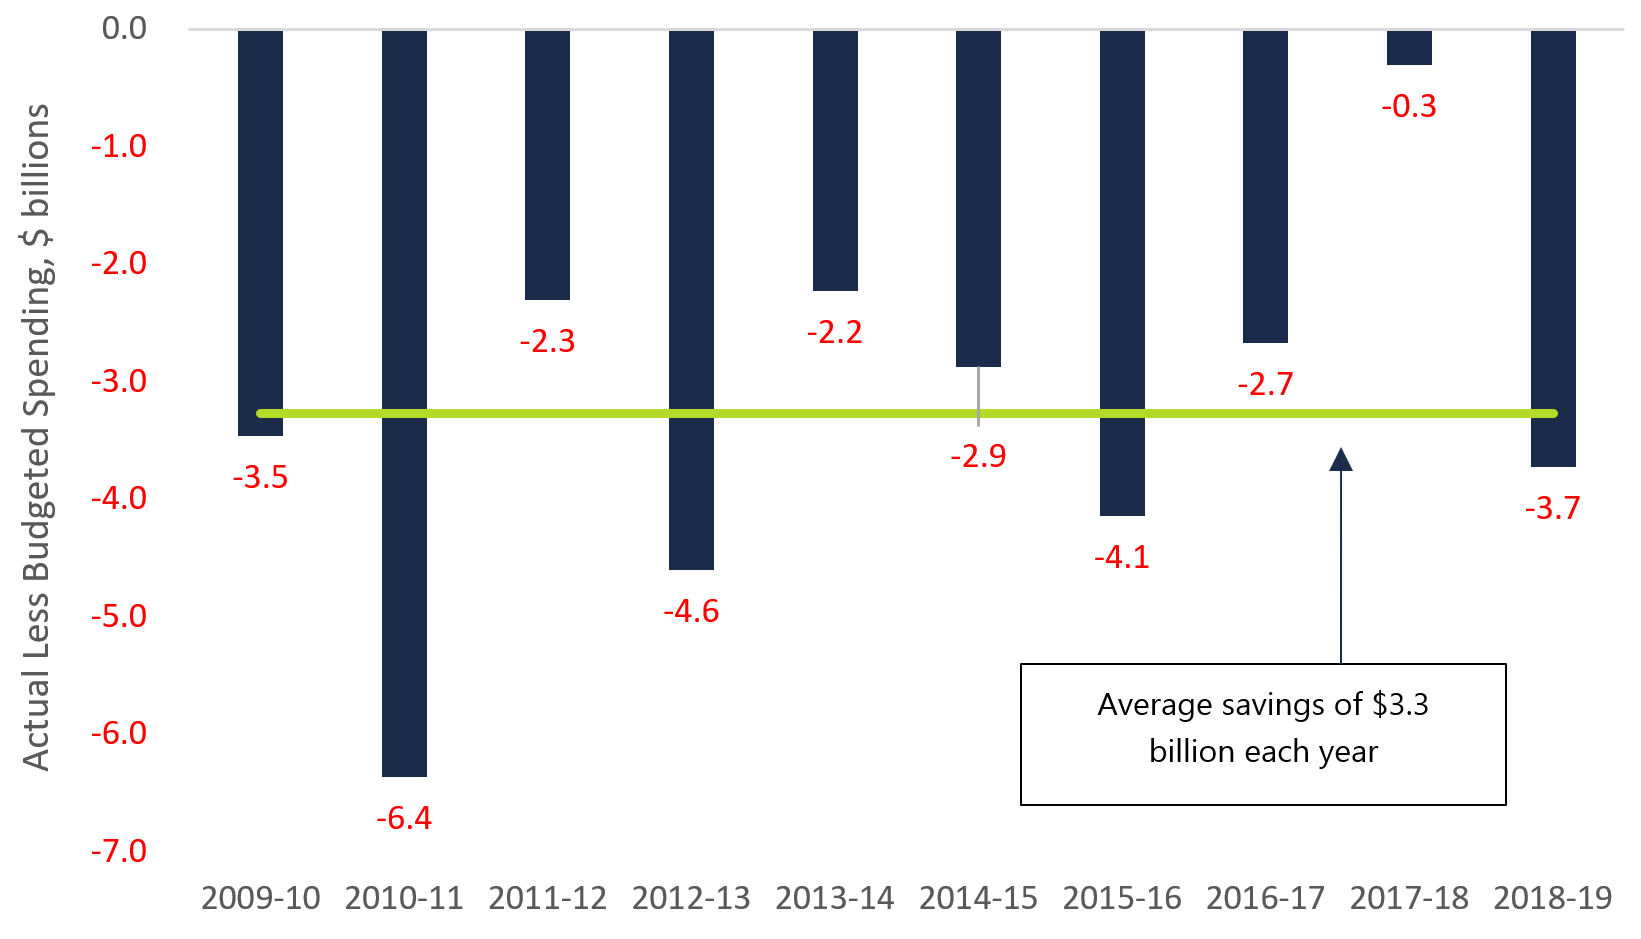 Figure 1: Average spending savings, 2009-10 to 2018-19, $ billions